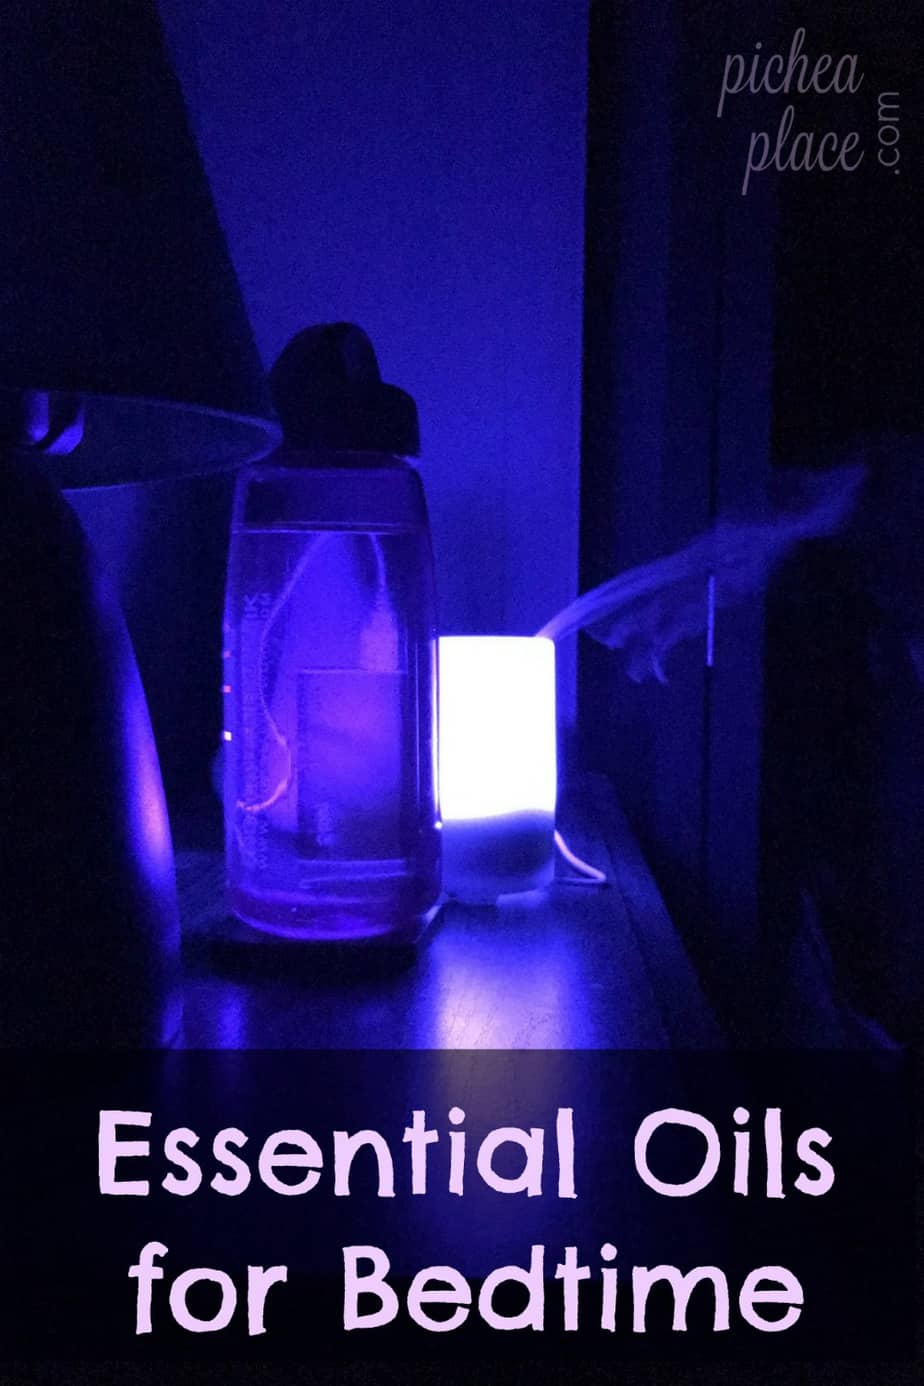 essential oils for bedtime